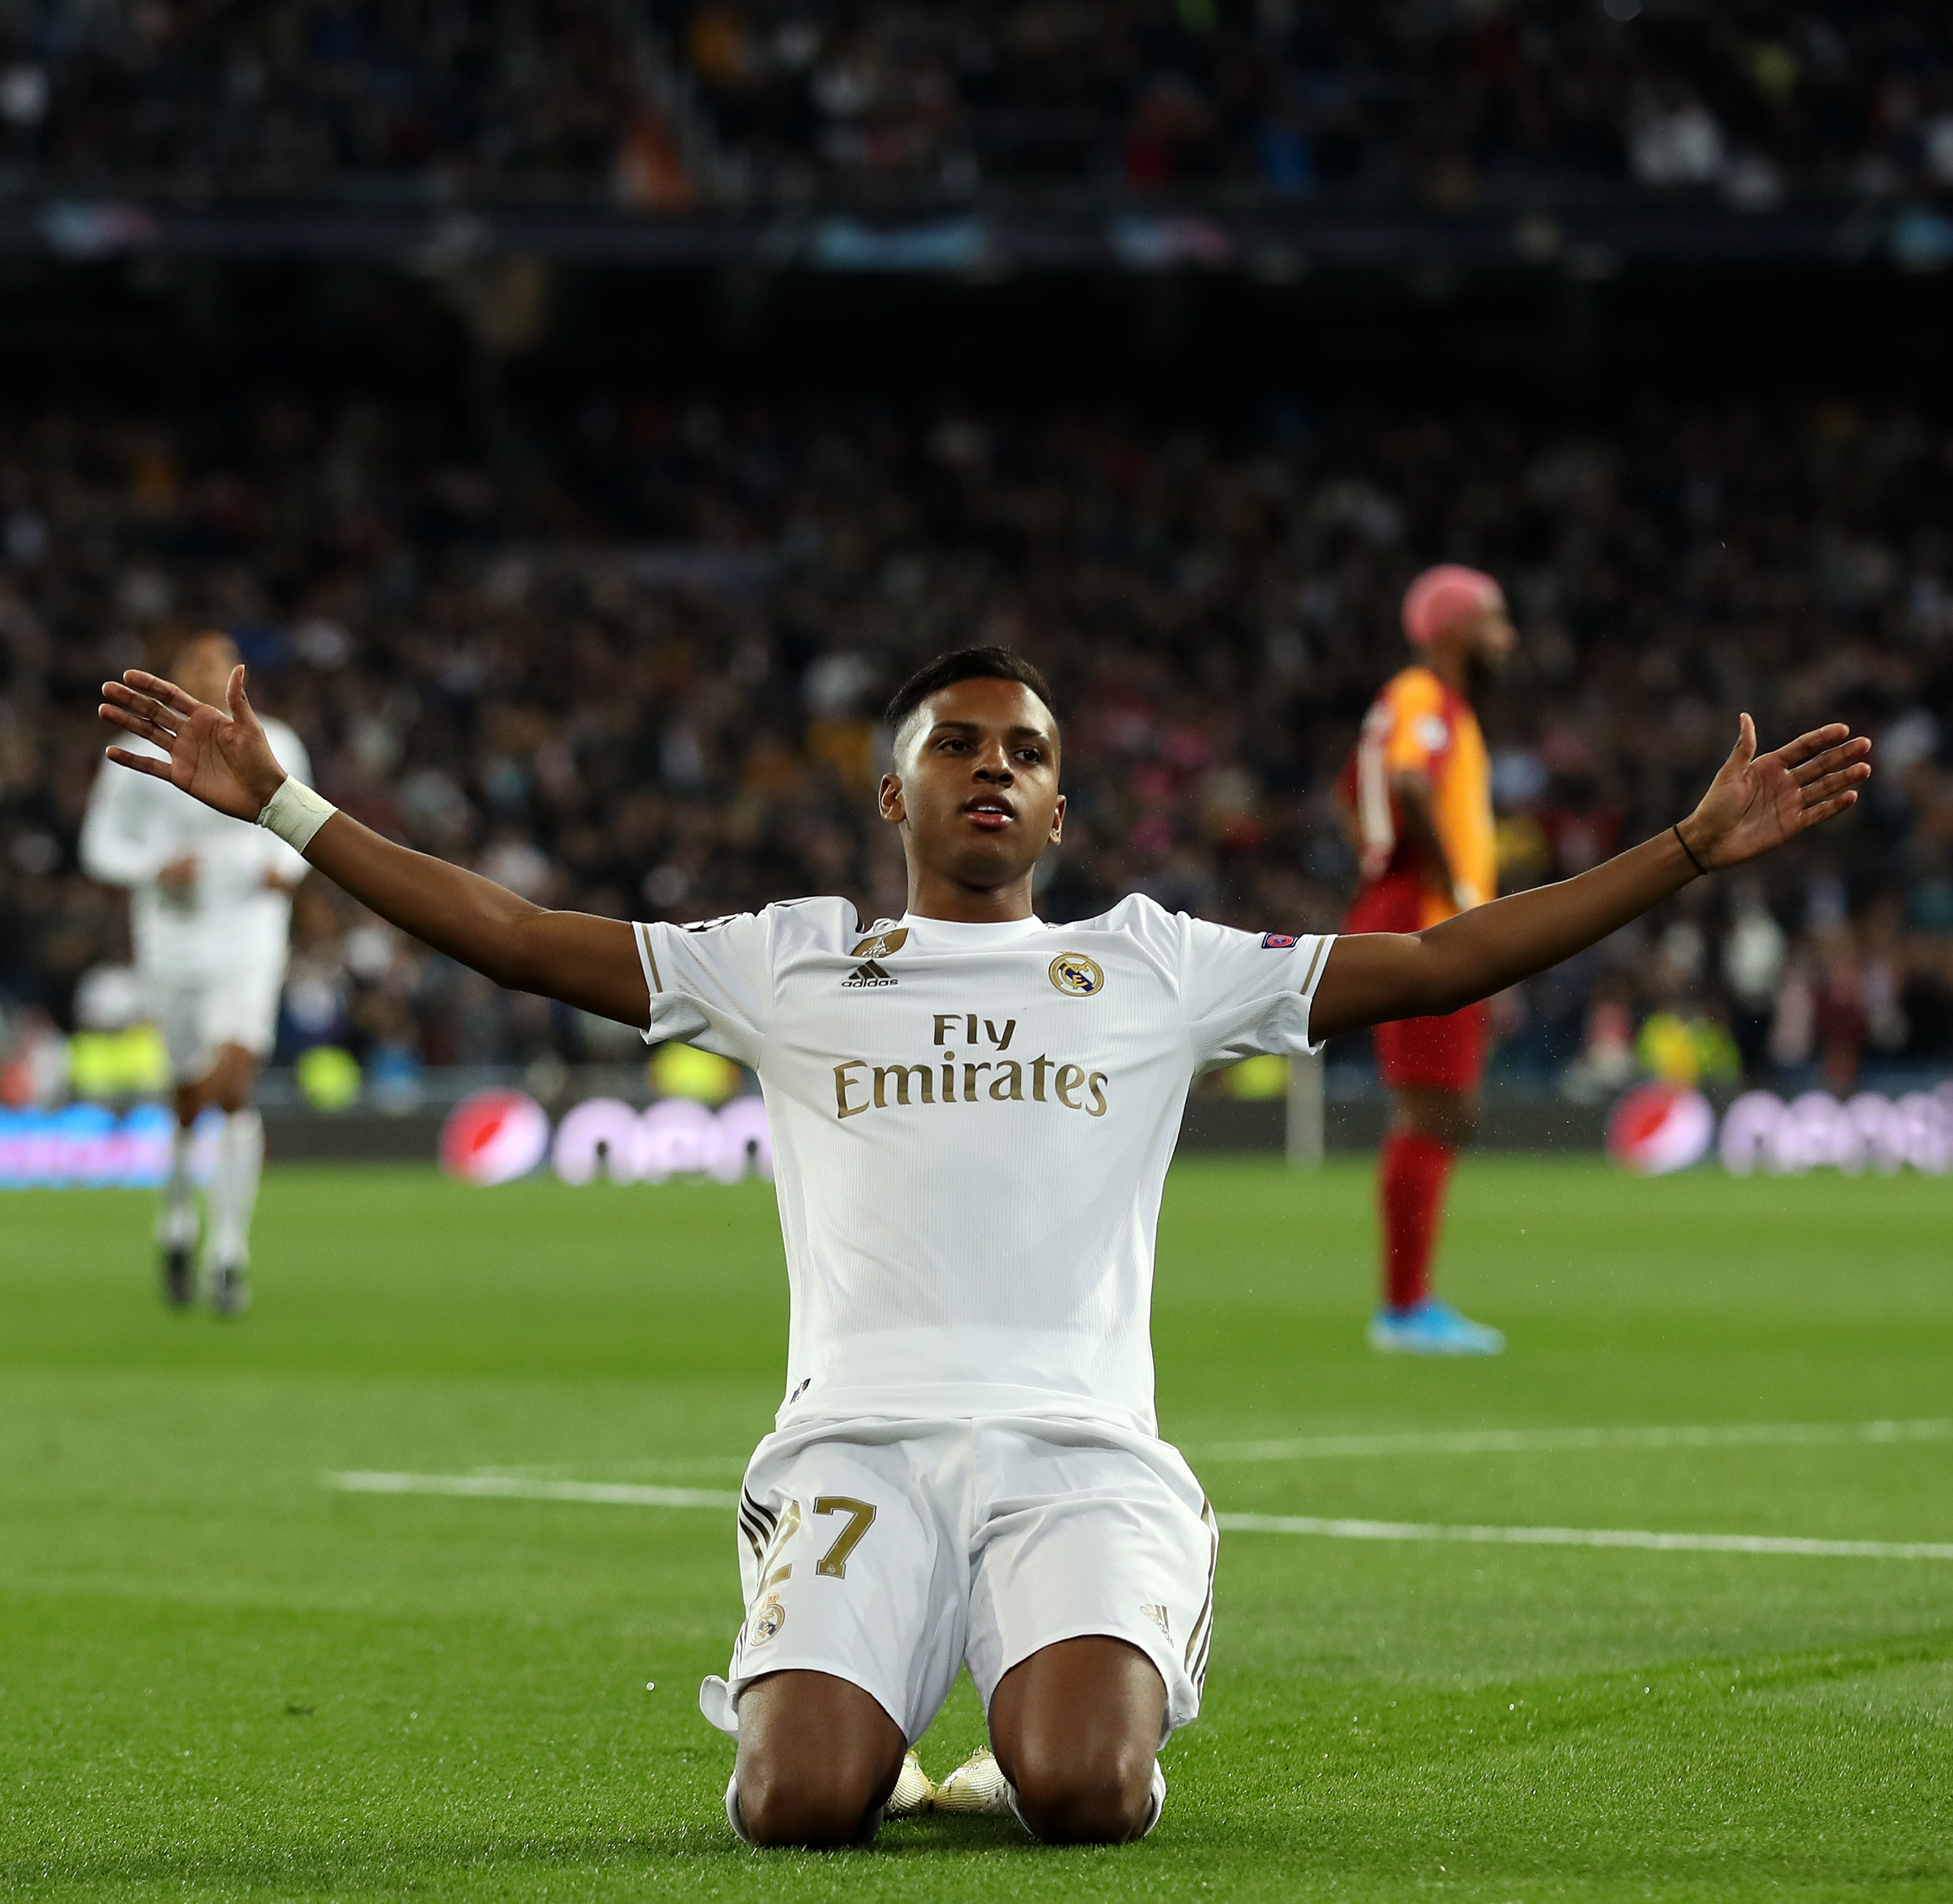 Rodrygo - The new wonderkid on the block (Photo by Angel Martinez/Getty Images)